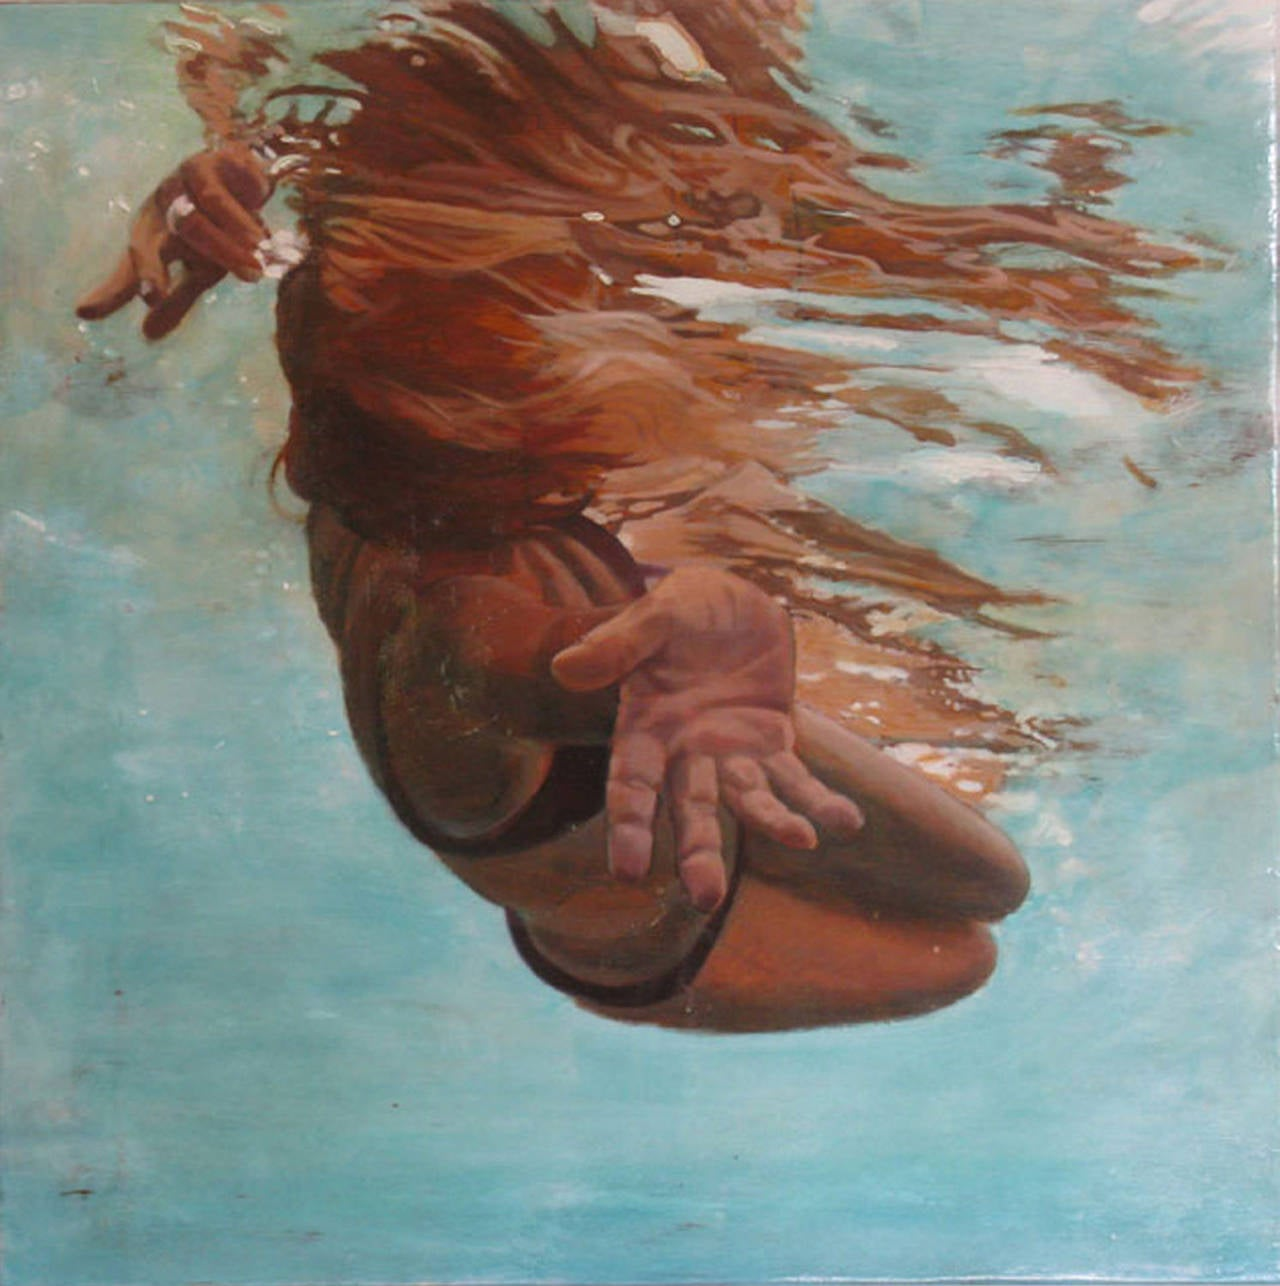 Carol Bennett Figurative Painting - Twist, Underwater Swimmer painting, Oil, Acrylic, Wood Panel, Figurative